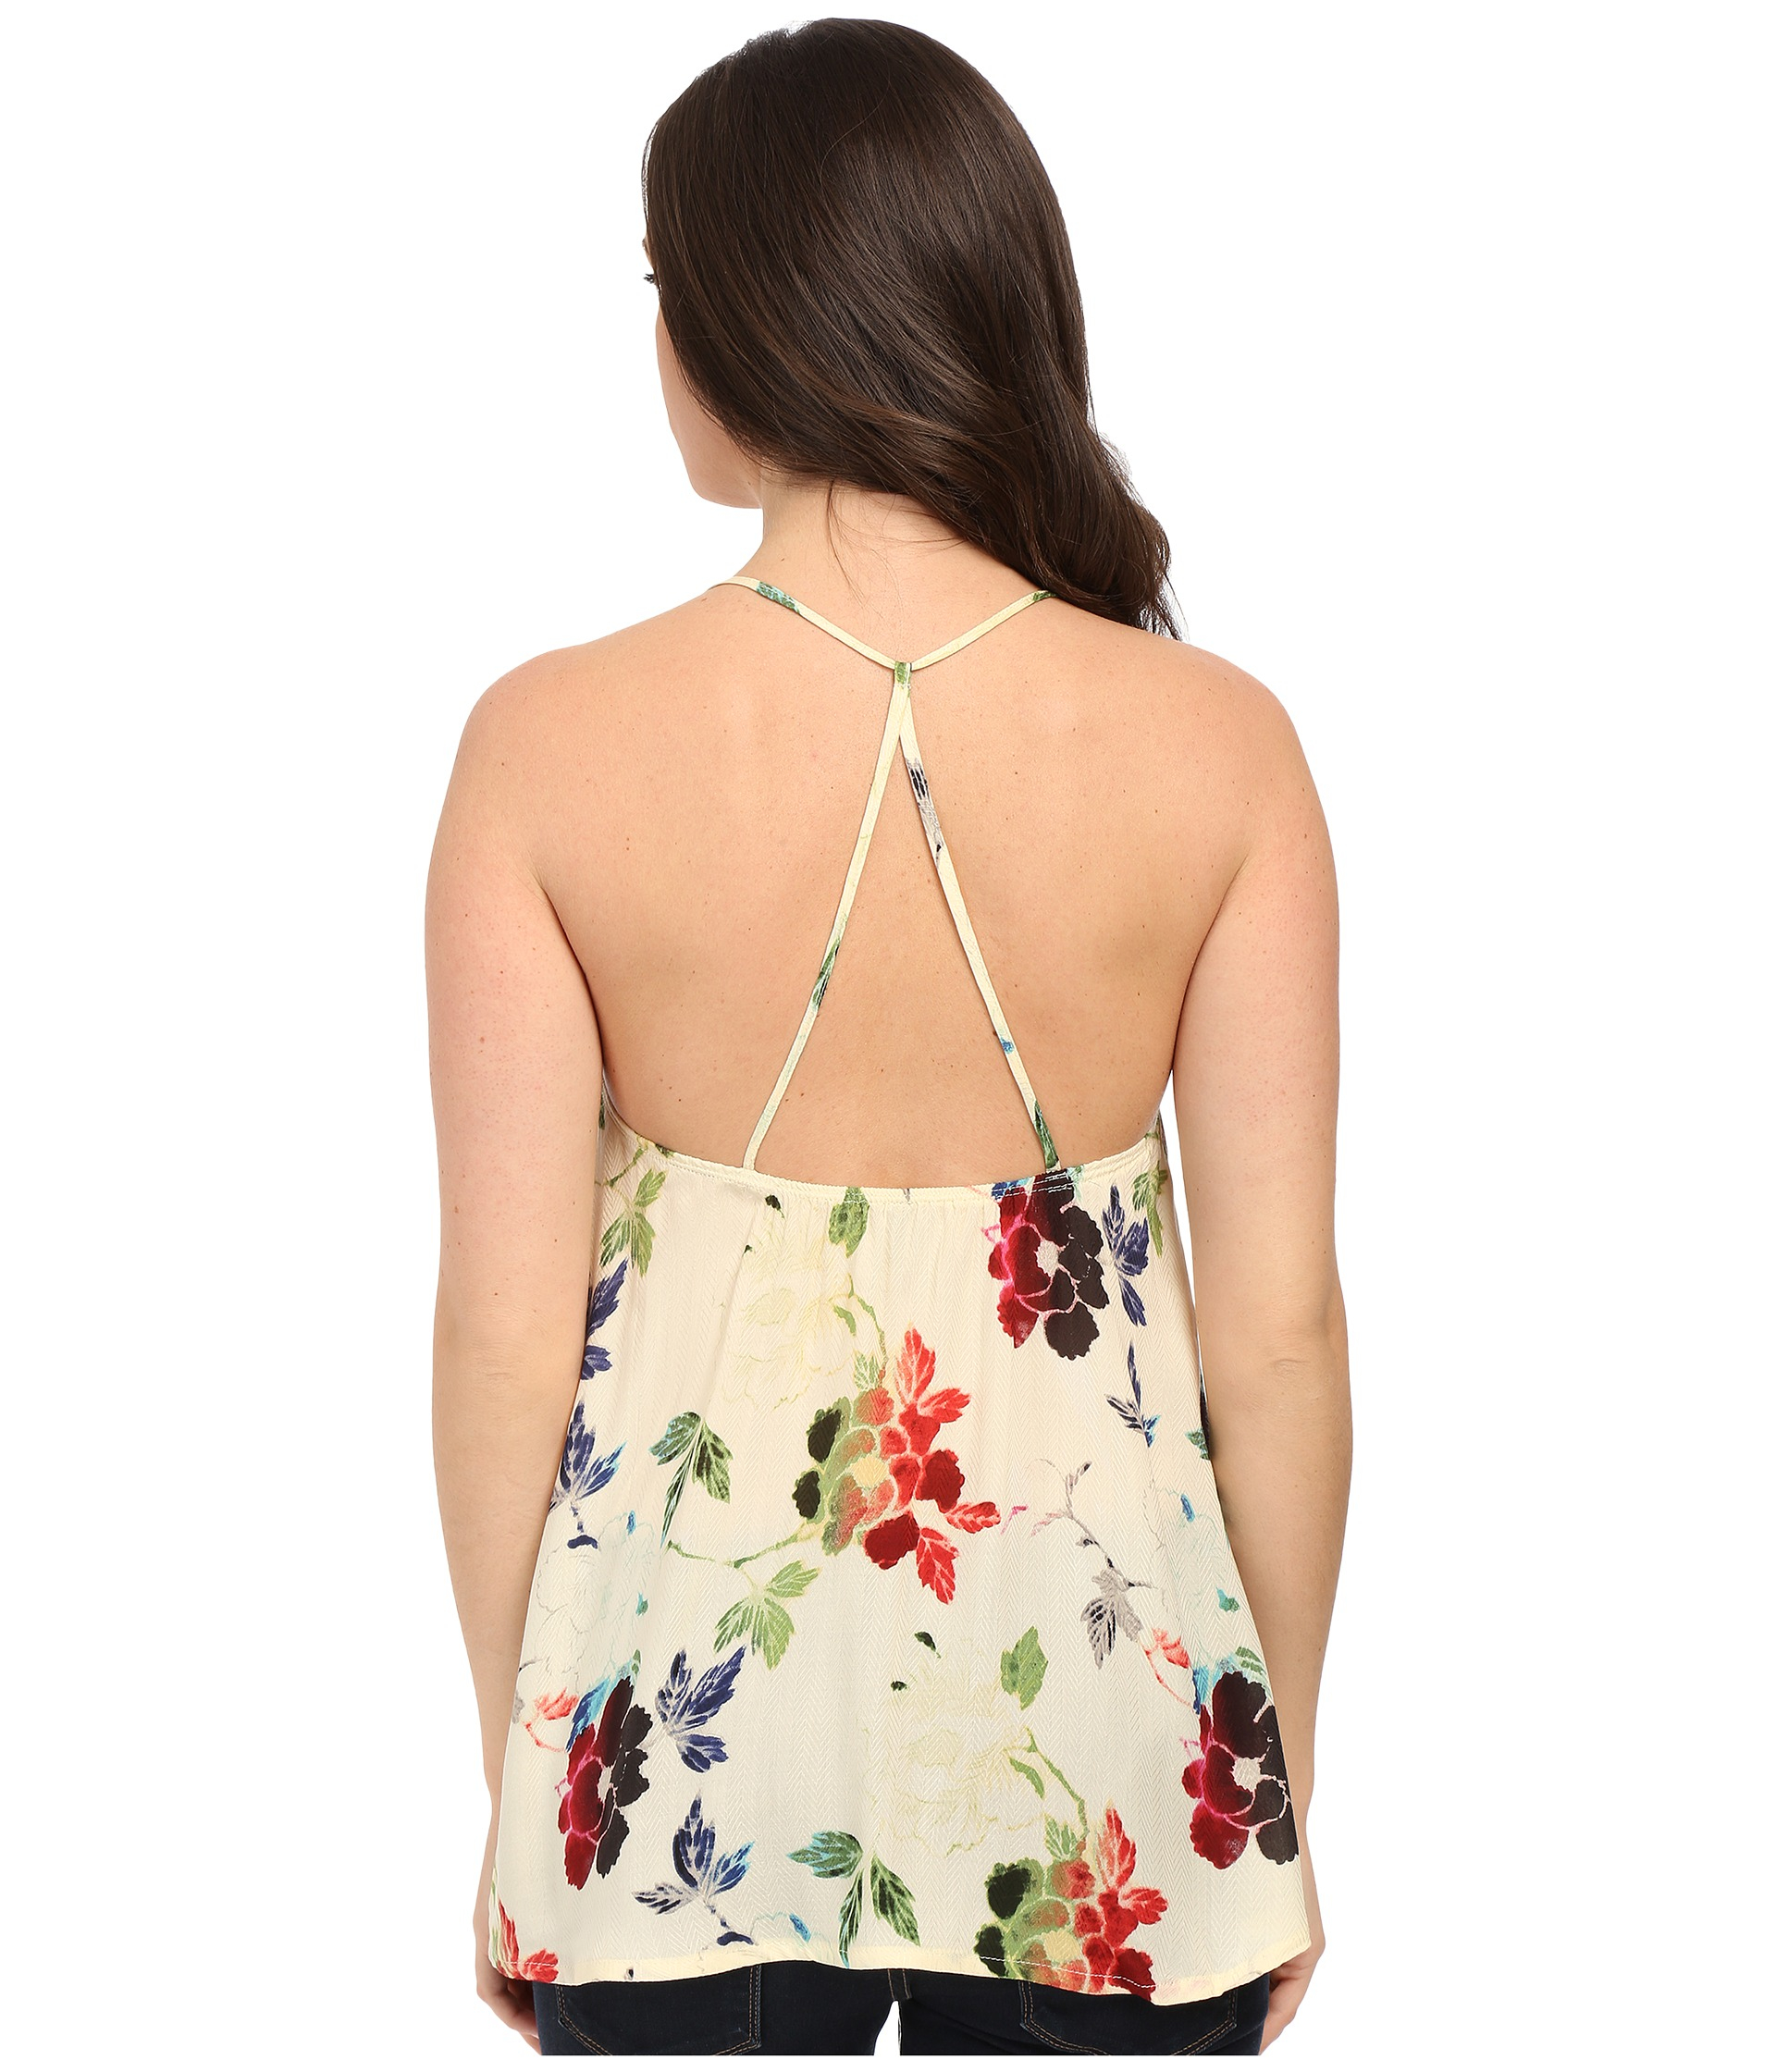 7702004b7a277 Lyst - Stetson Textured Floral Print Rayon Tank Top in White